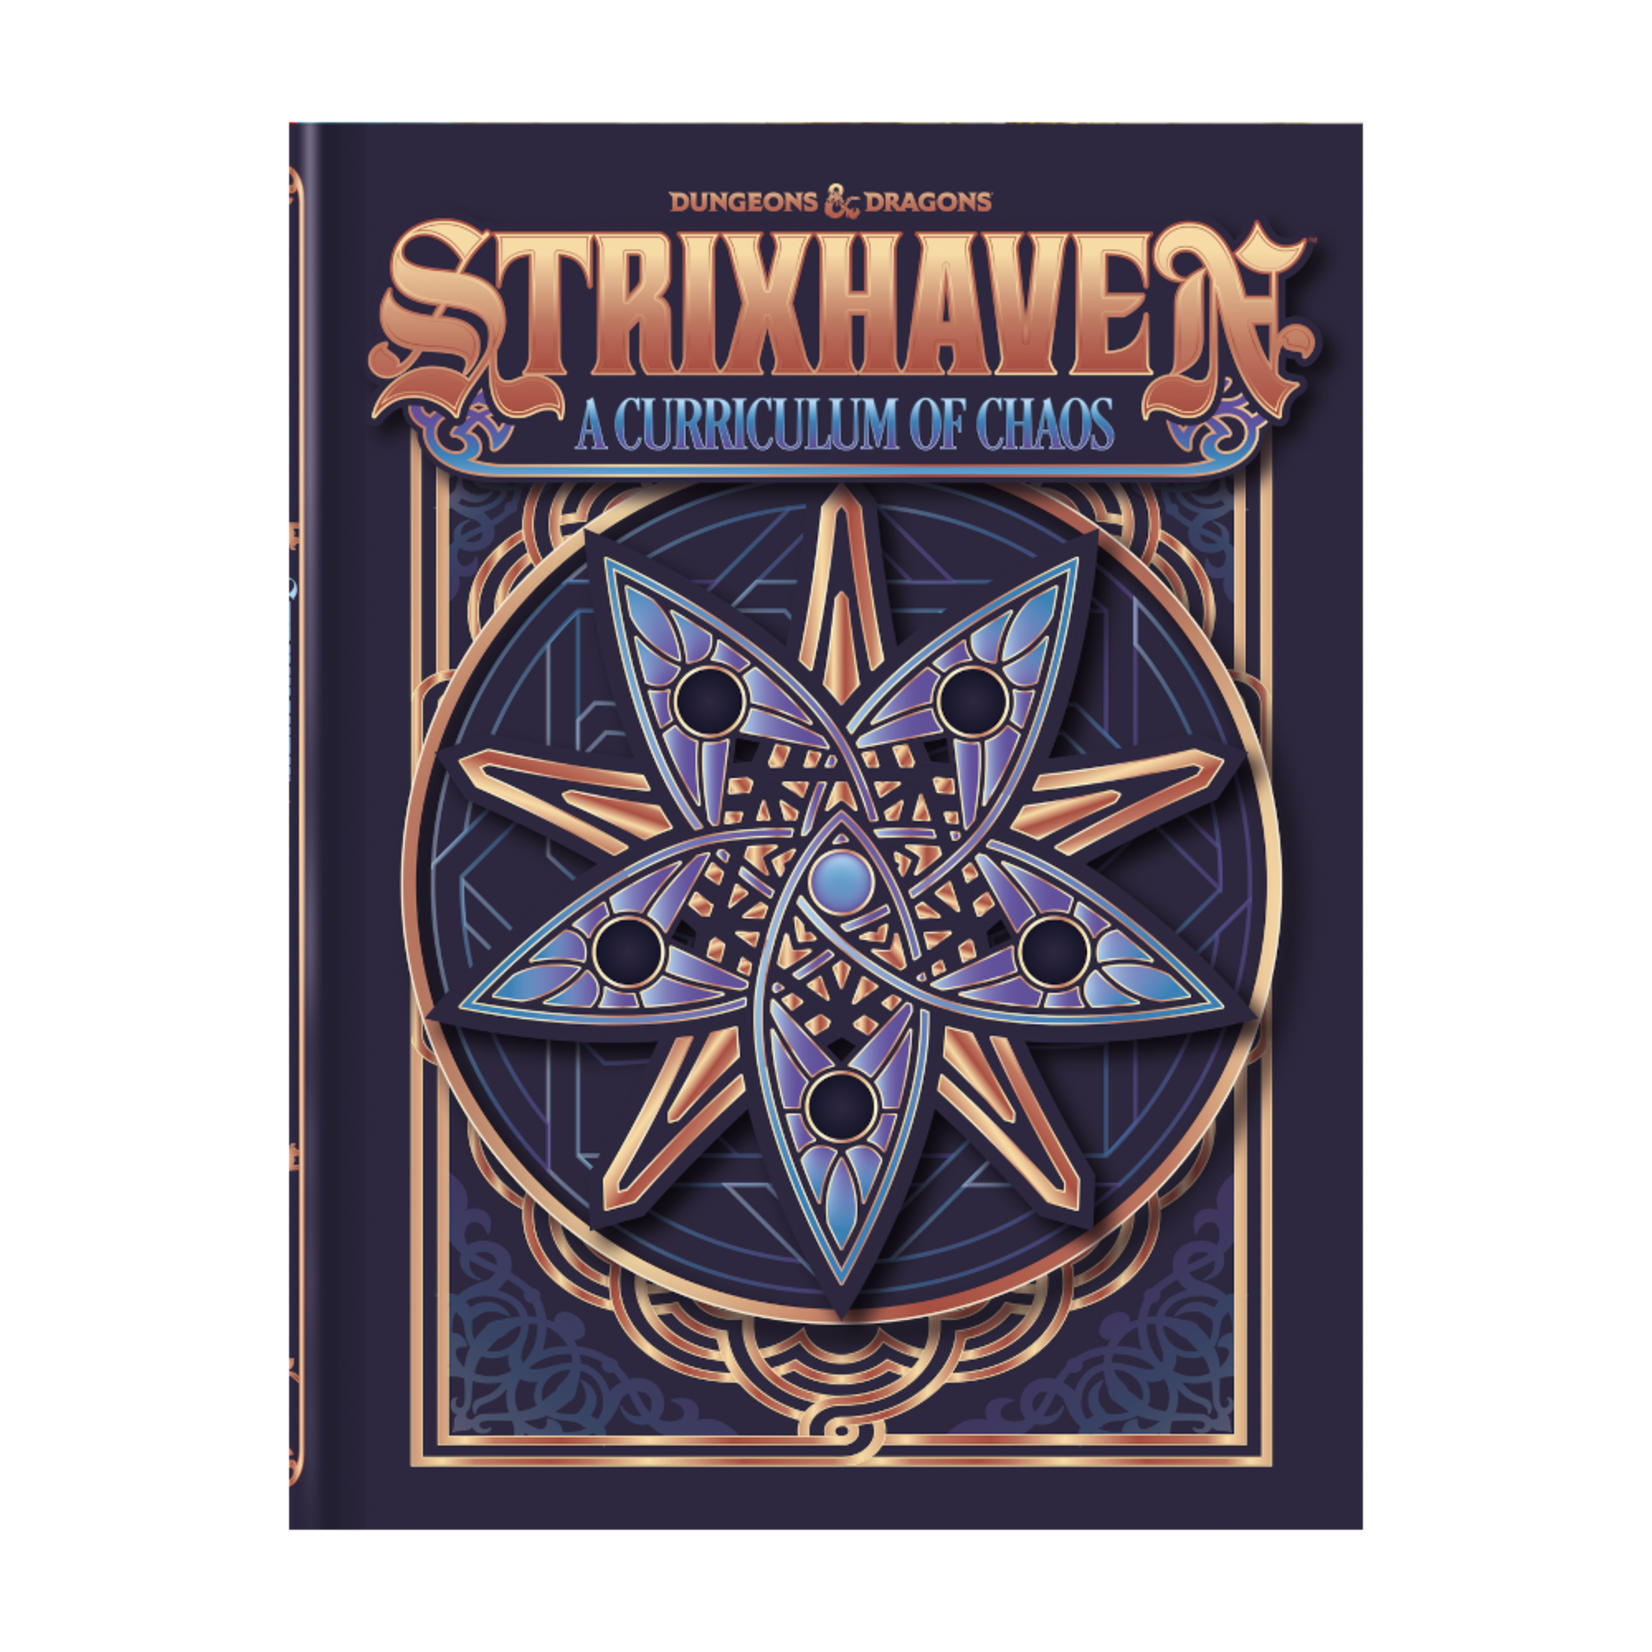 Wizards of the Coast Dungeons and Dragons Fifth Edition: Strixhaven - A Curriculum of Chaos Hardcover ALTERNATE COVER (Preorder)